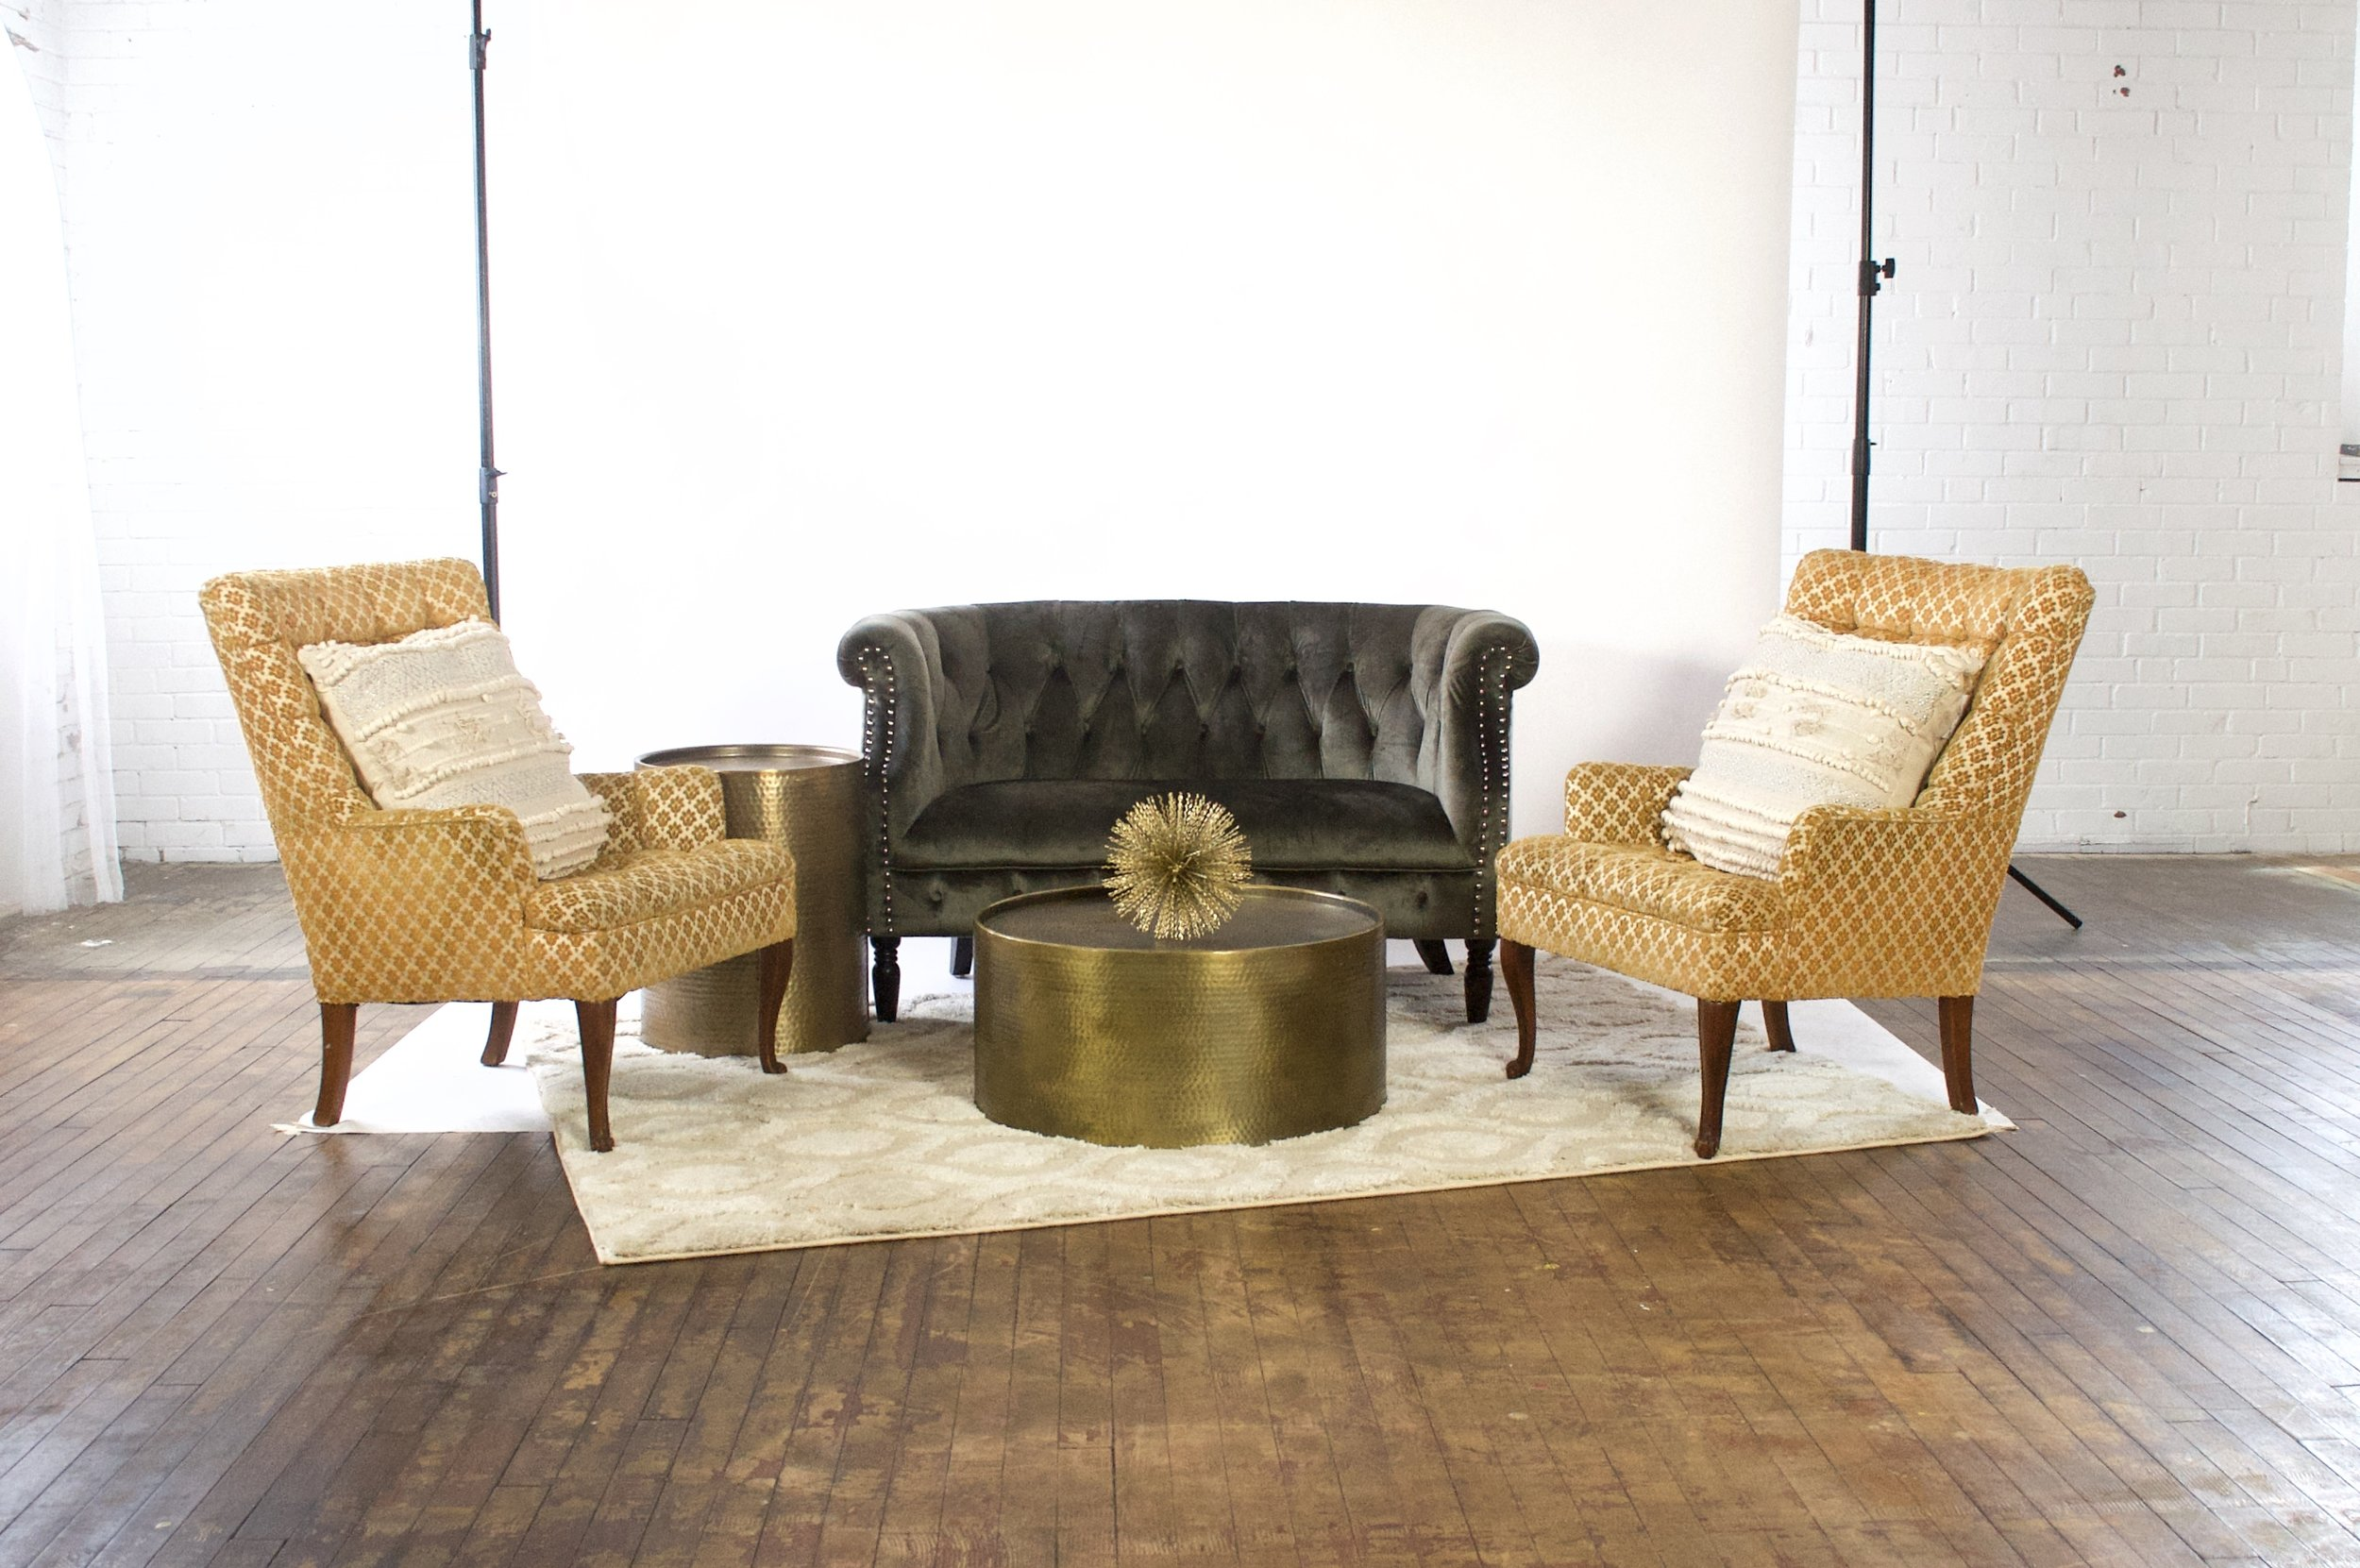 Digory and Seth Demi - featuring moroccan cream rug, dimpled brass tables